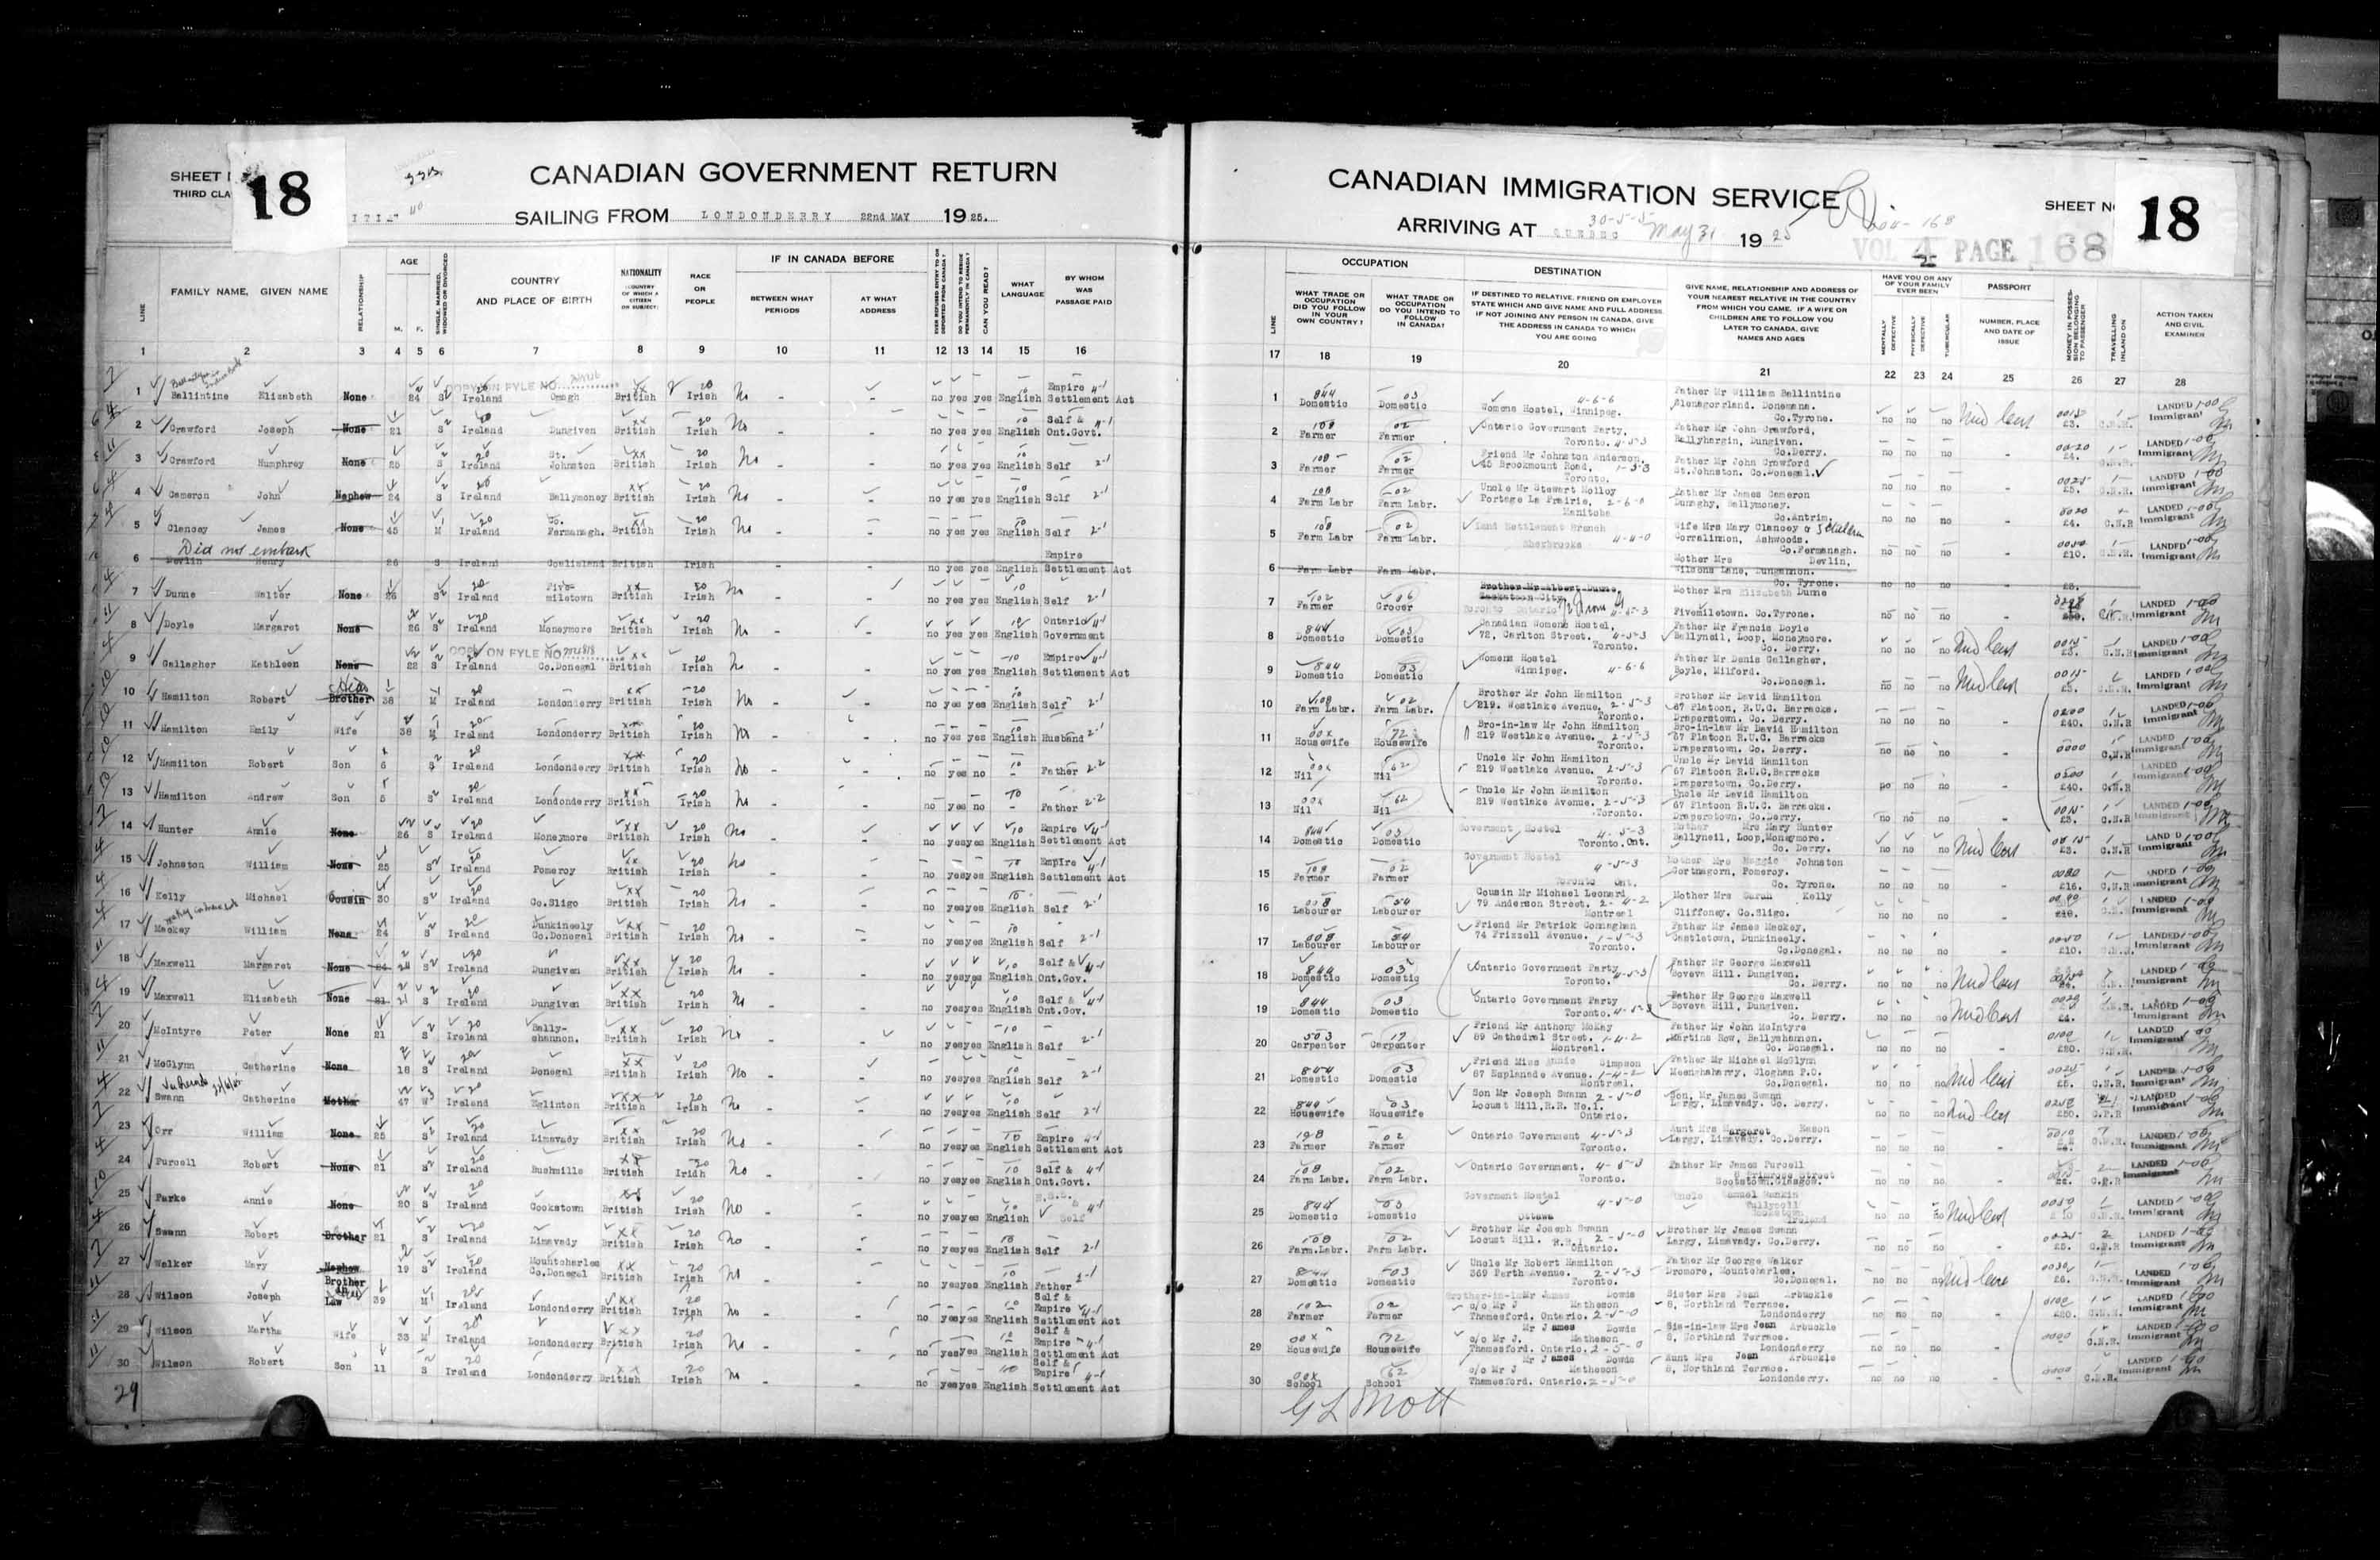 Title: Passenger Lists: Quebec City (1925-1935) - Mikan Number: 134839 - Microform: t-14716